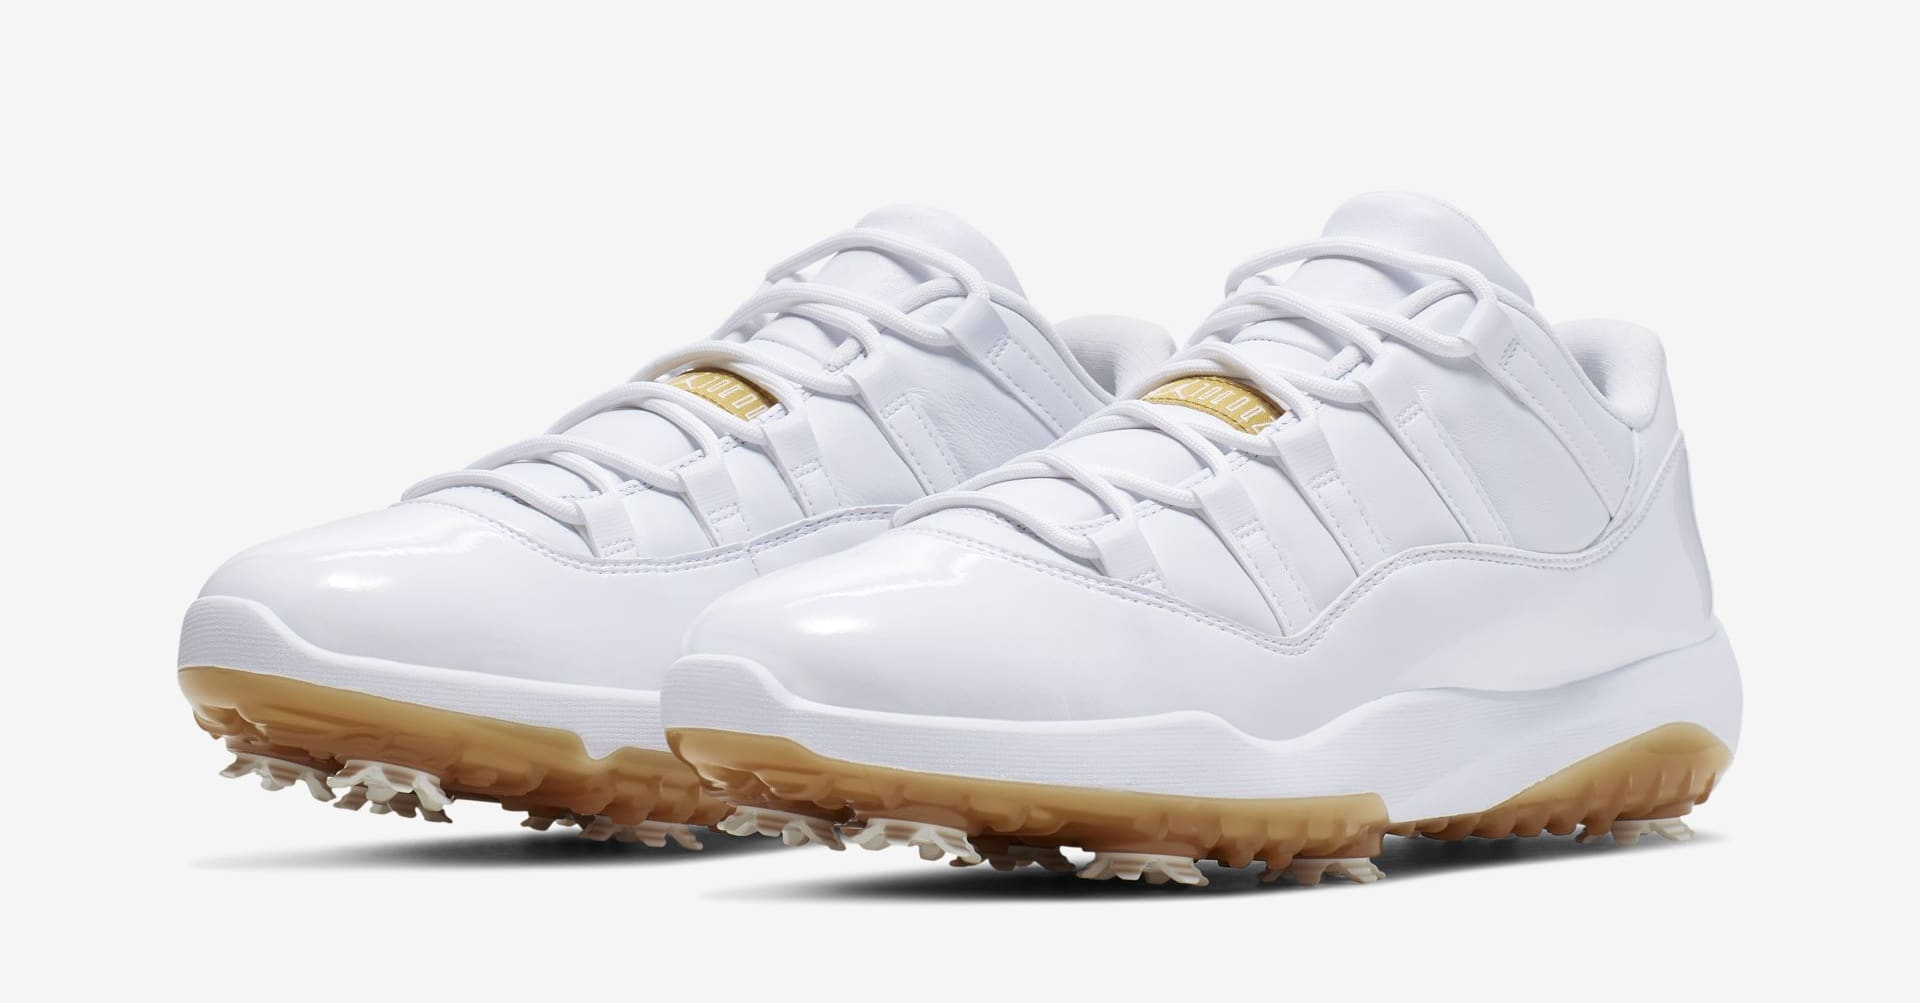 Air Jordan 11 Low Golf 'White/Metallic Gold' (Pair)